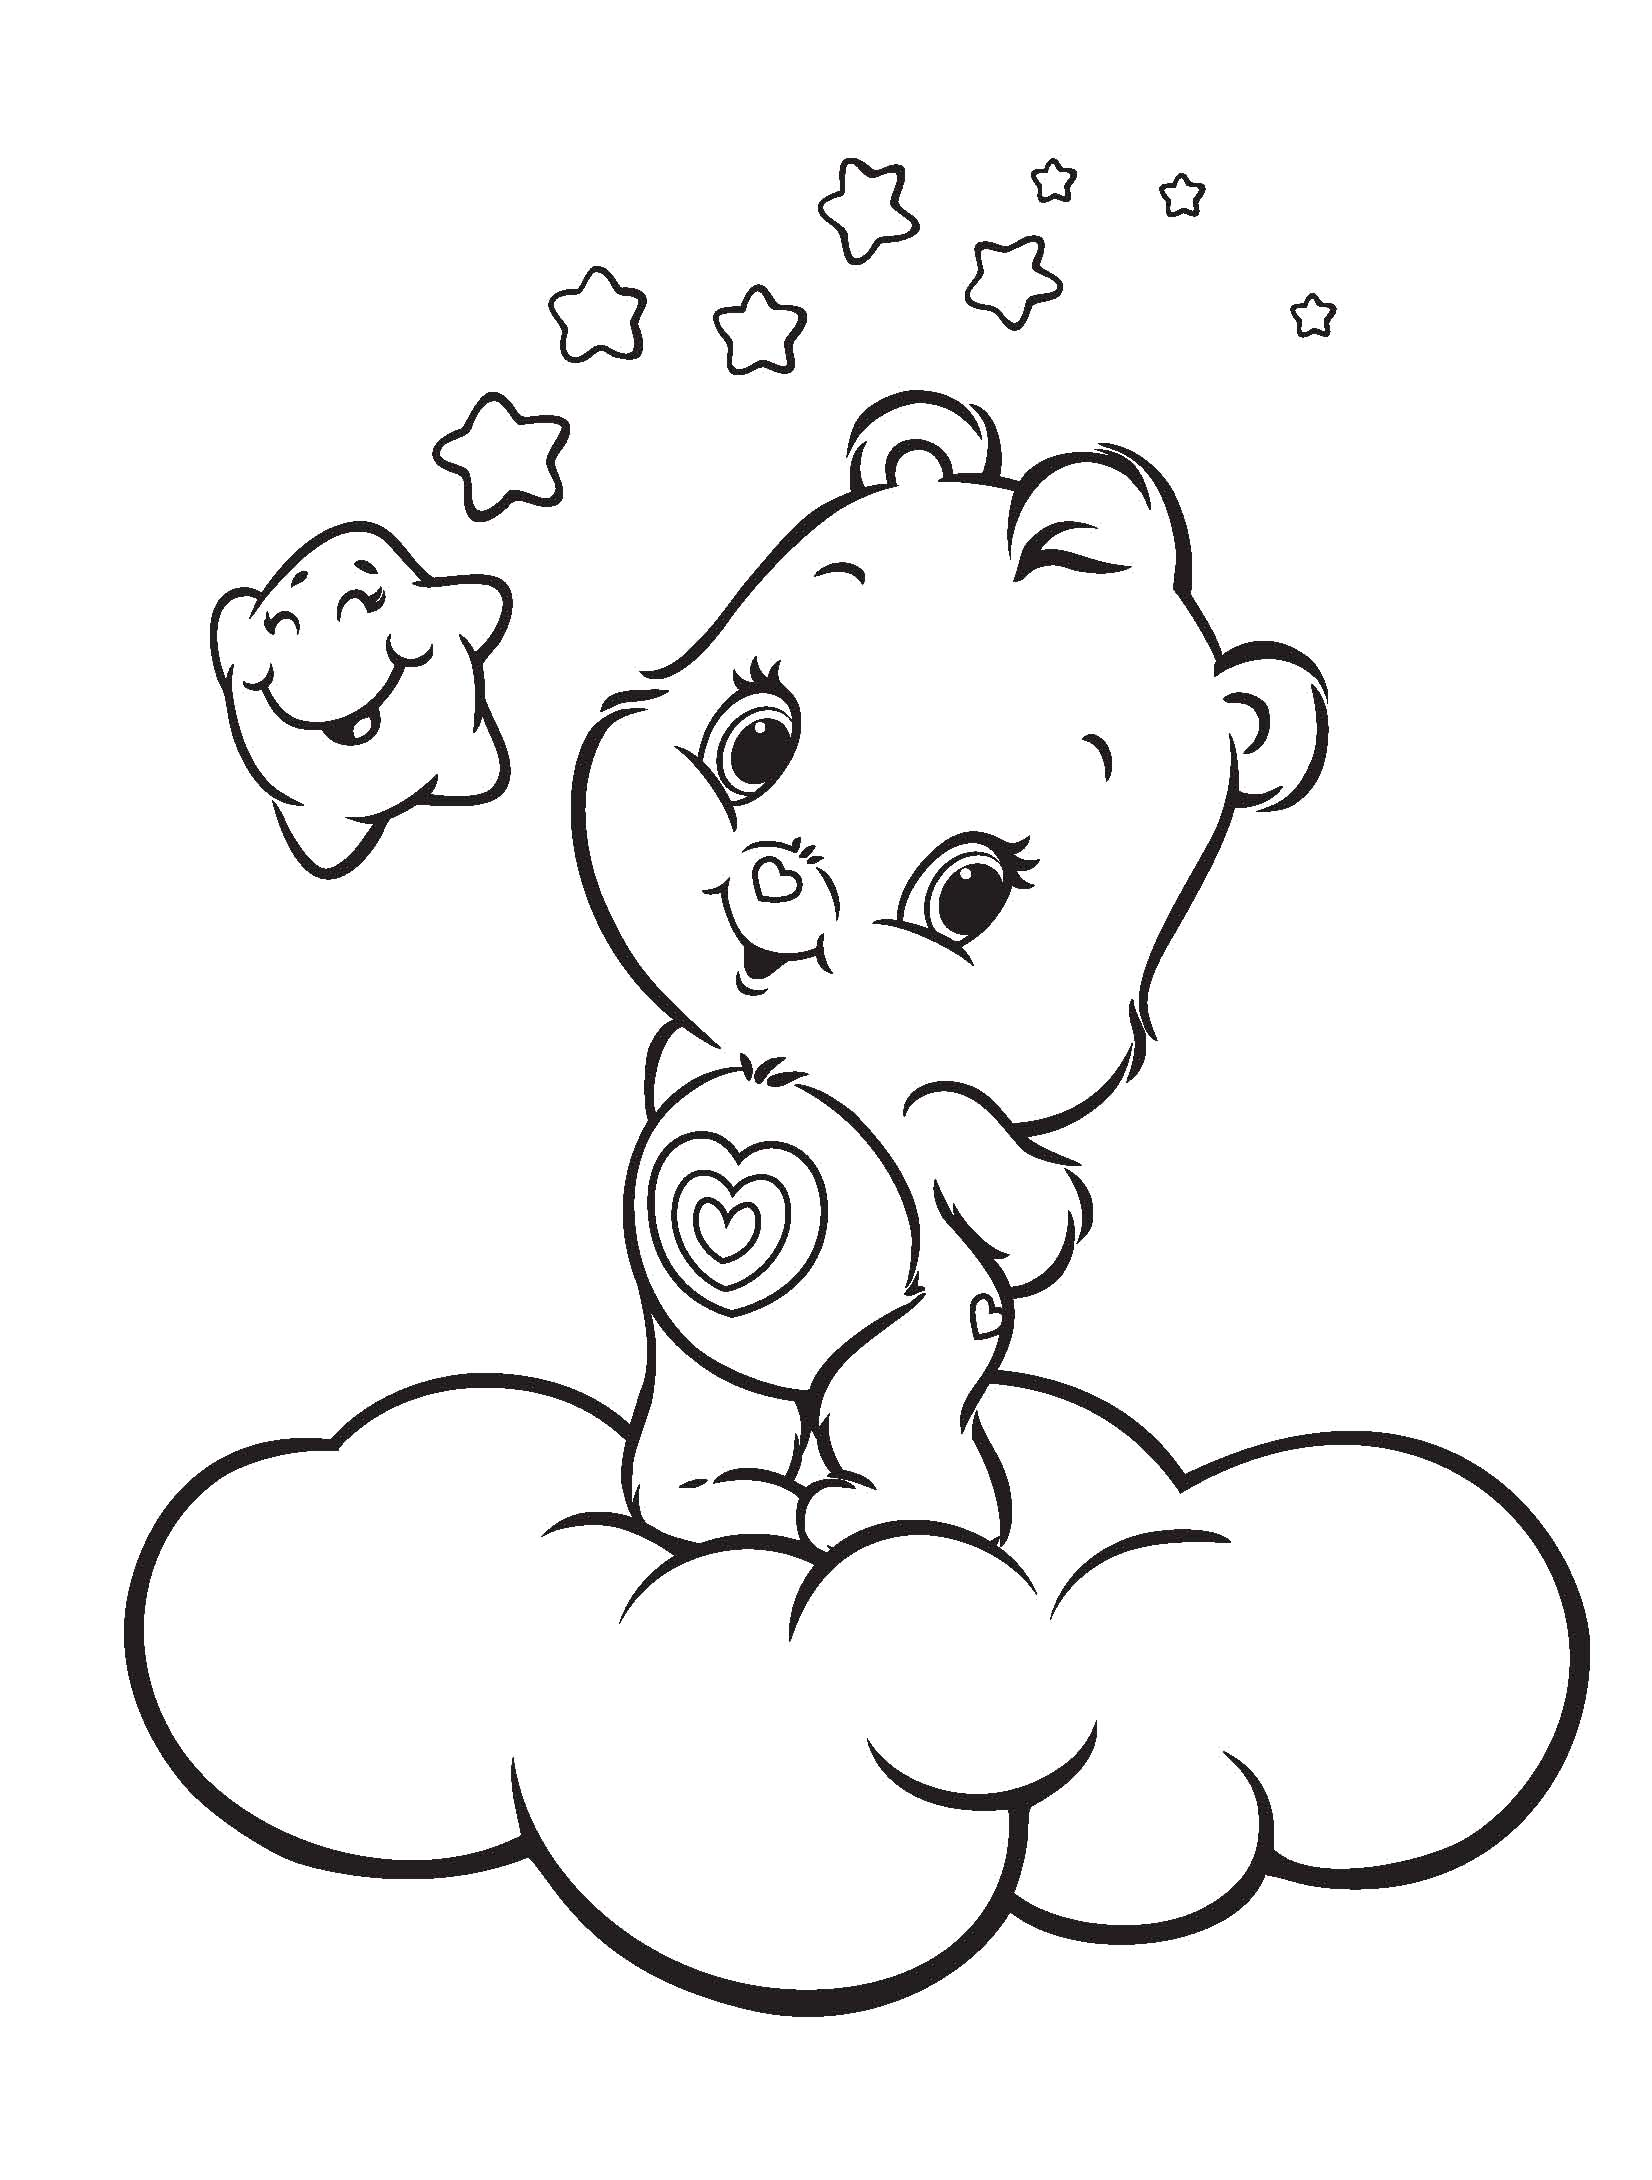 the care bears coloring pages - photo#5